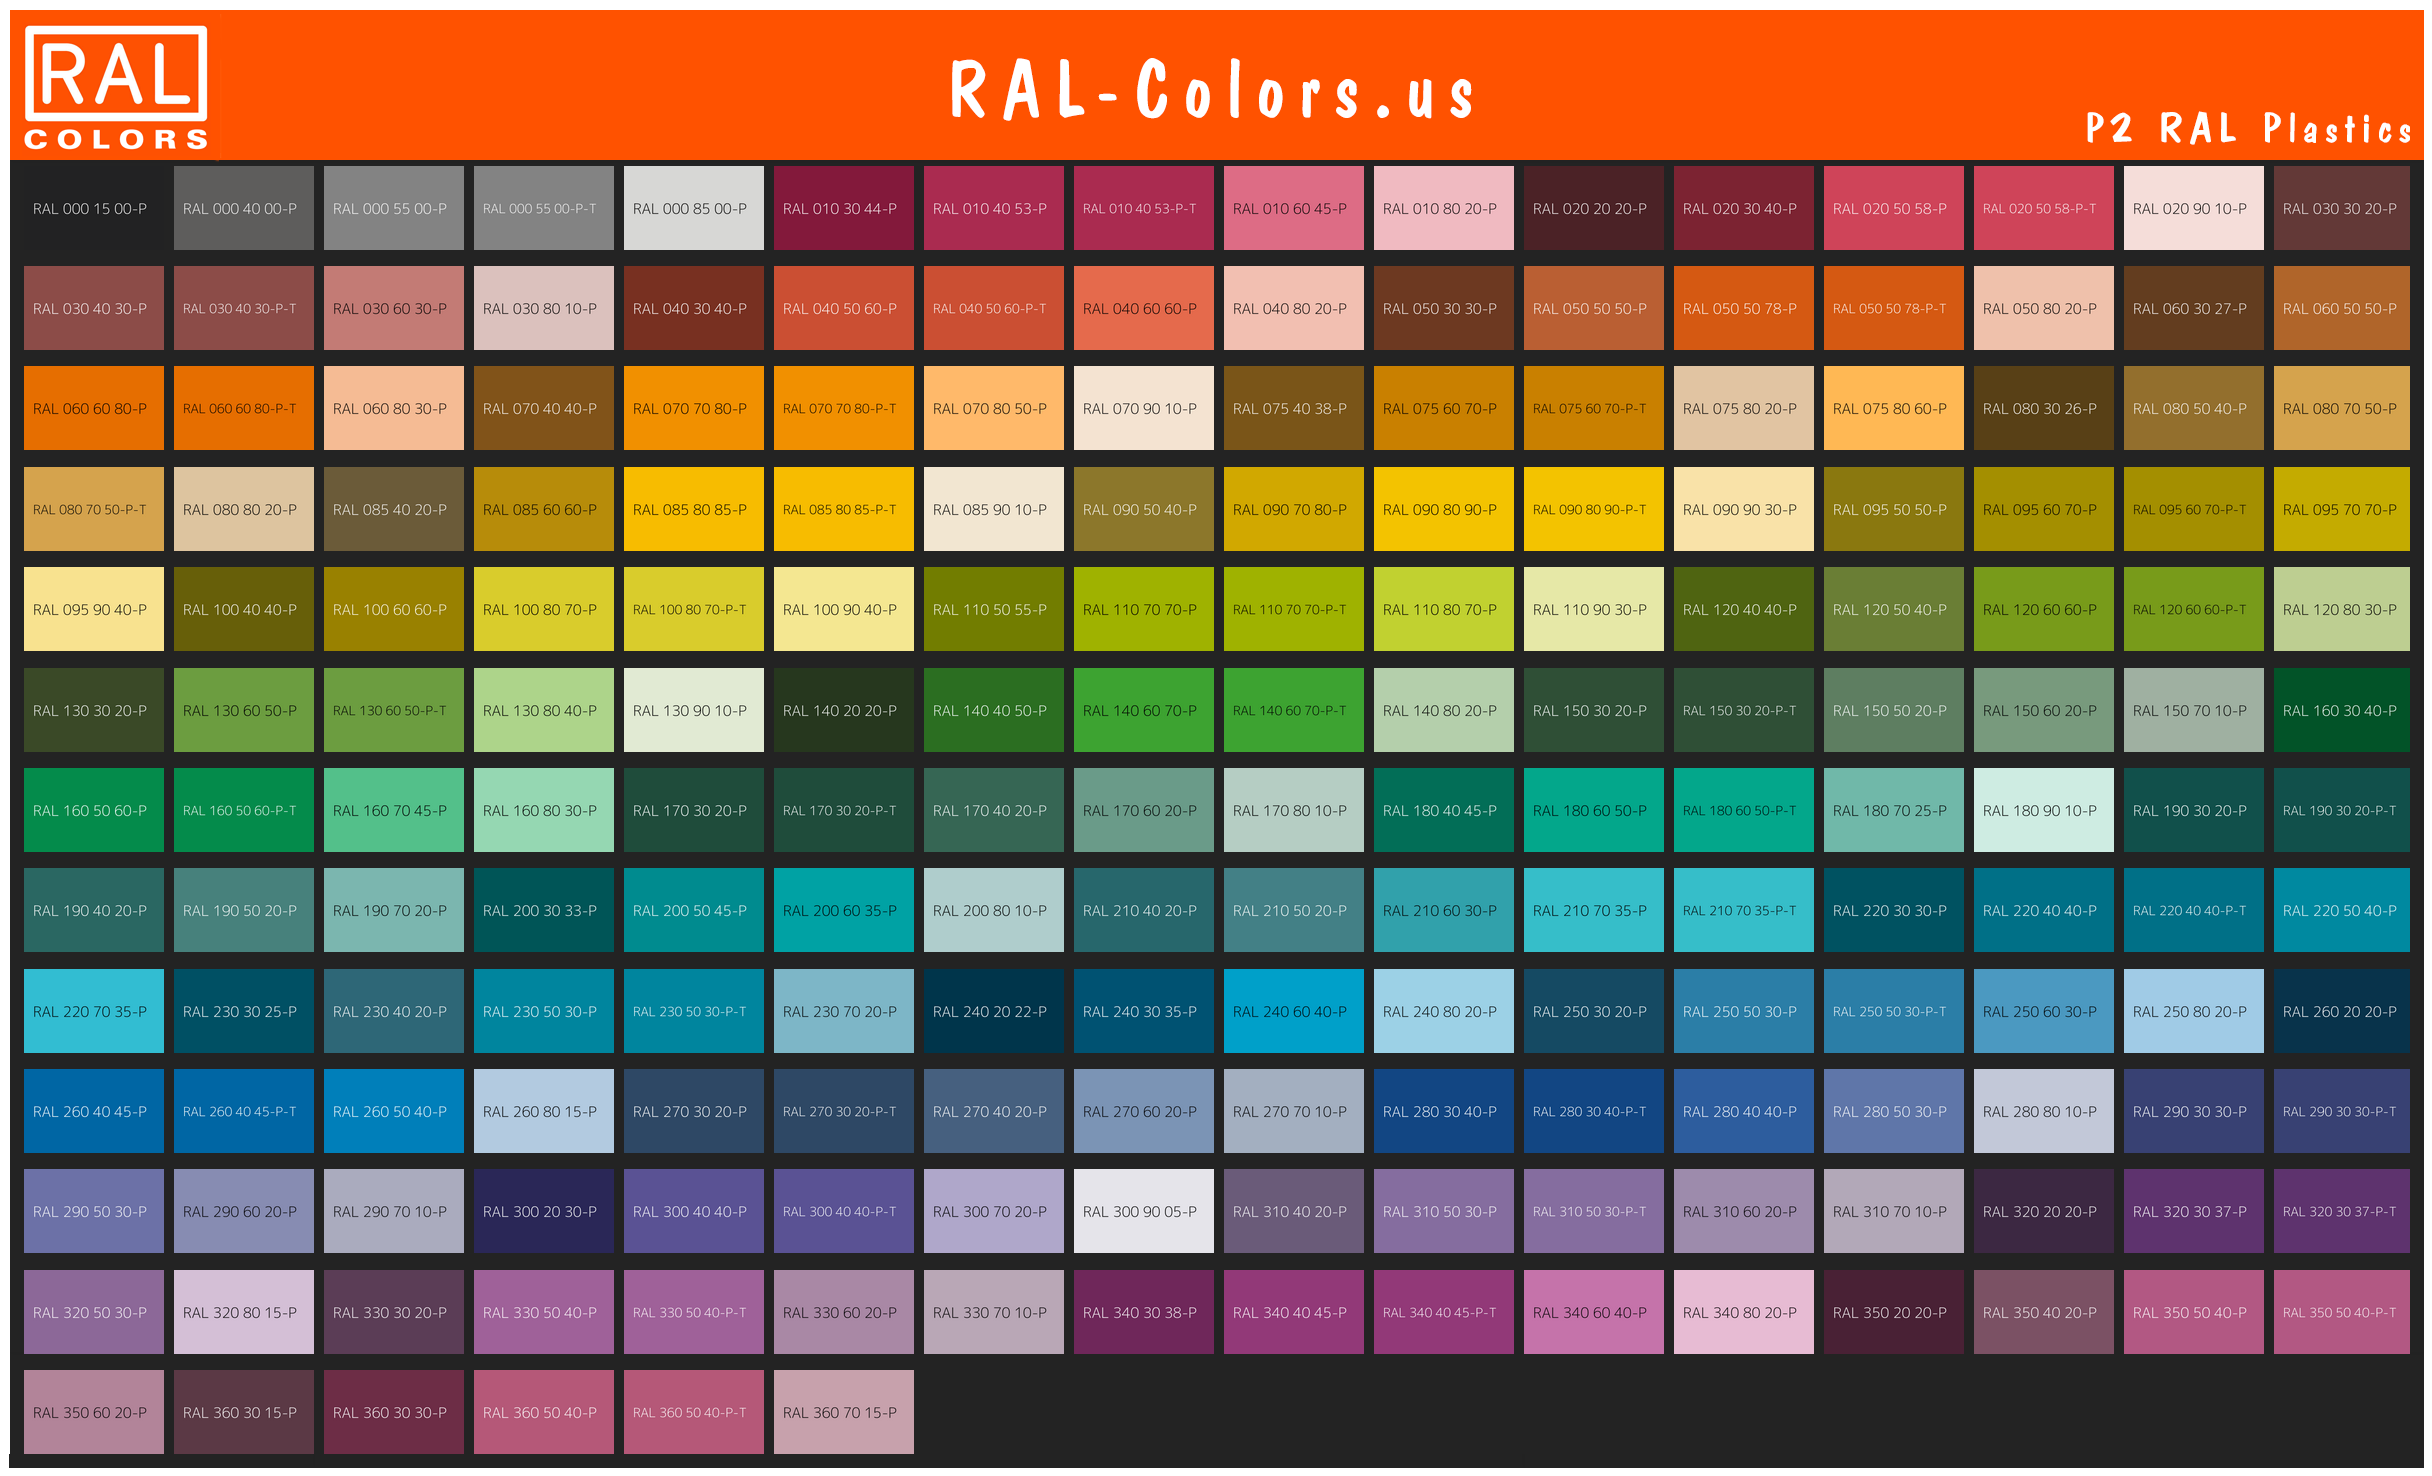 P2 RAL Plastics Color chart USA